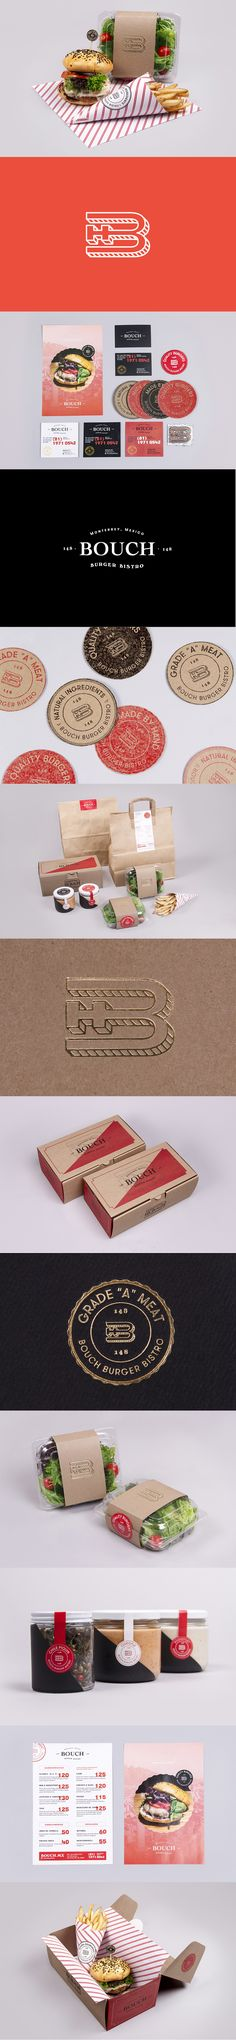 Package design food burger logo icon type flyer bags menu box vintage restaurant More